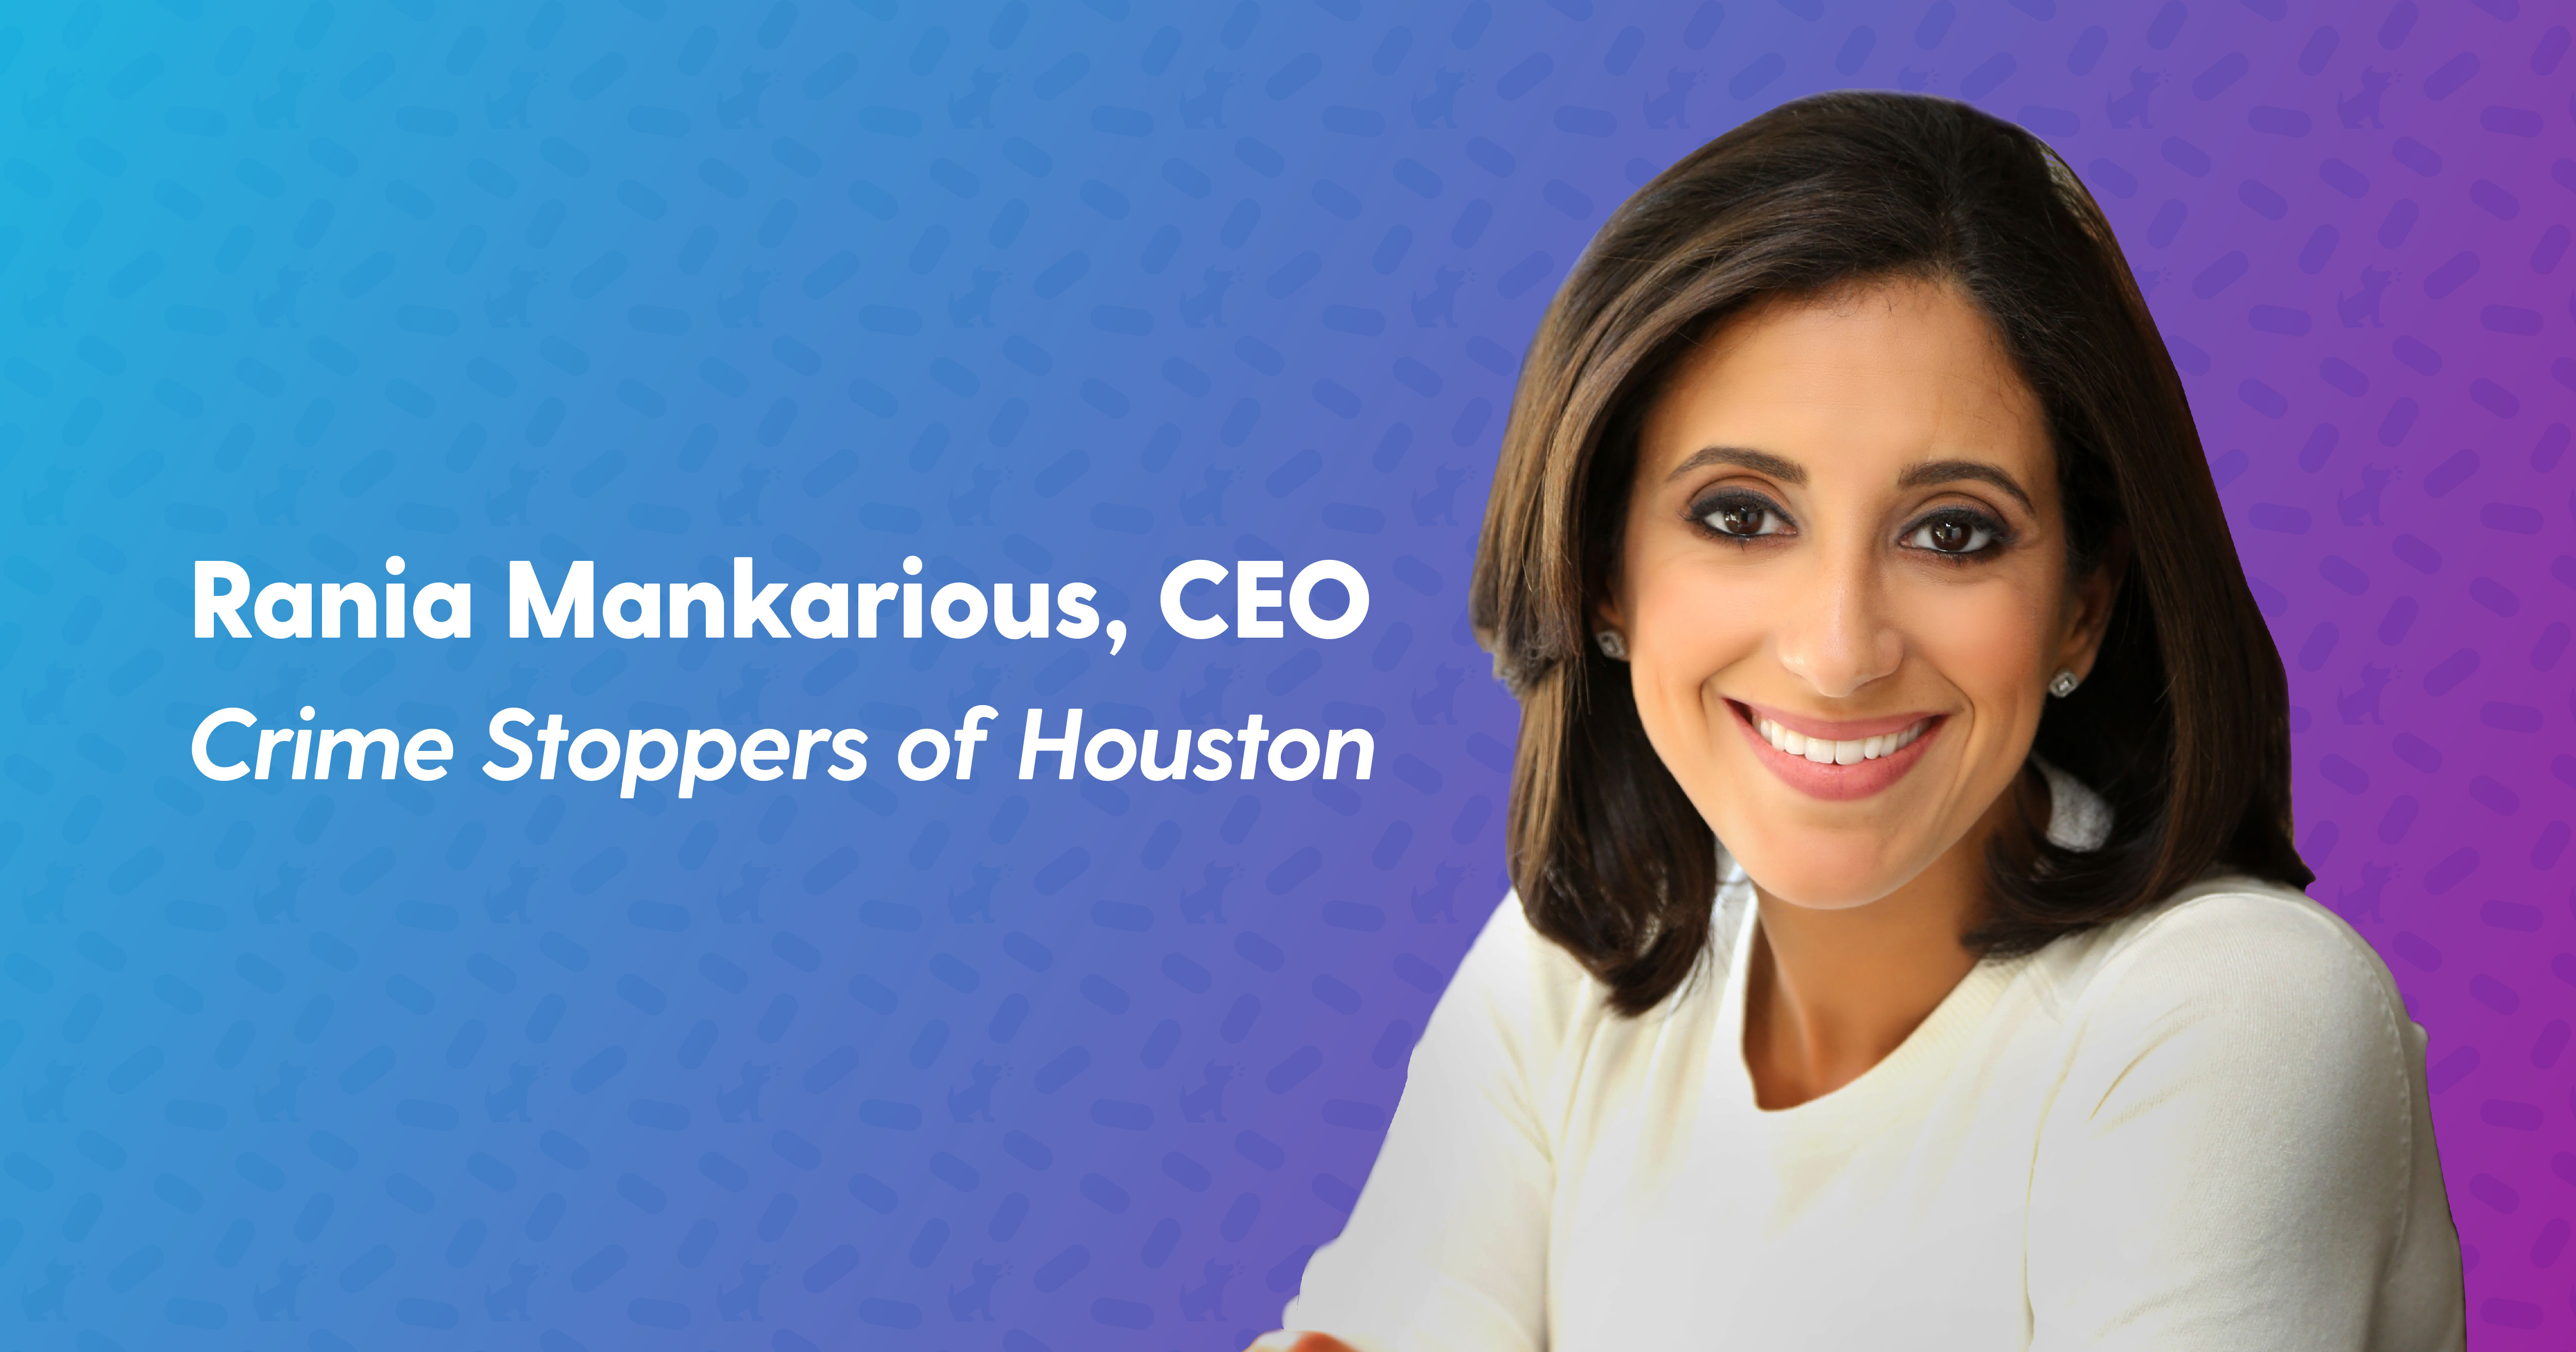 Rania Mankarious - CEO of Crime Stoppers of Houston